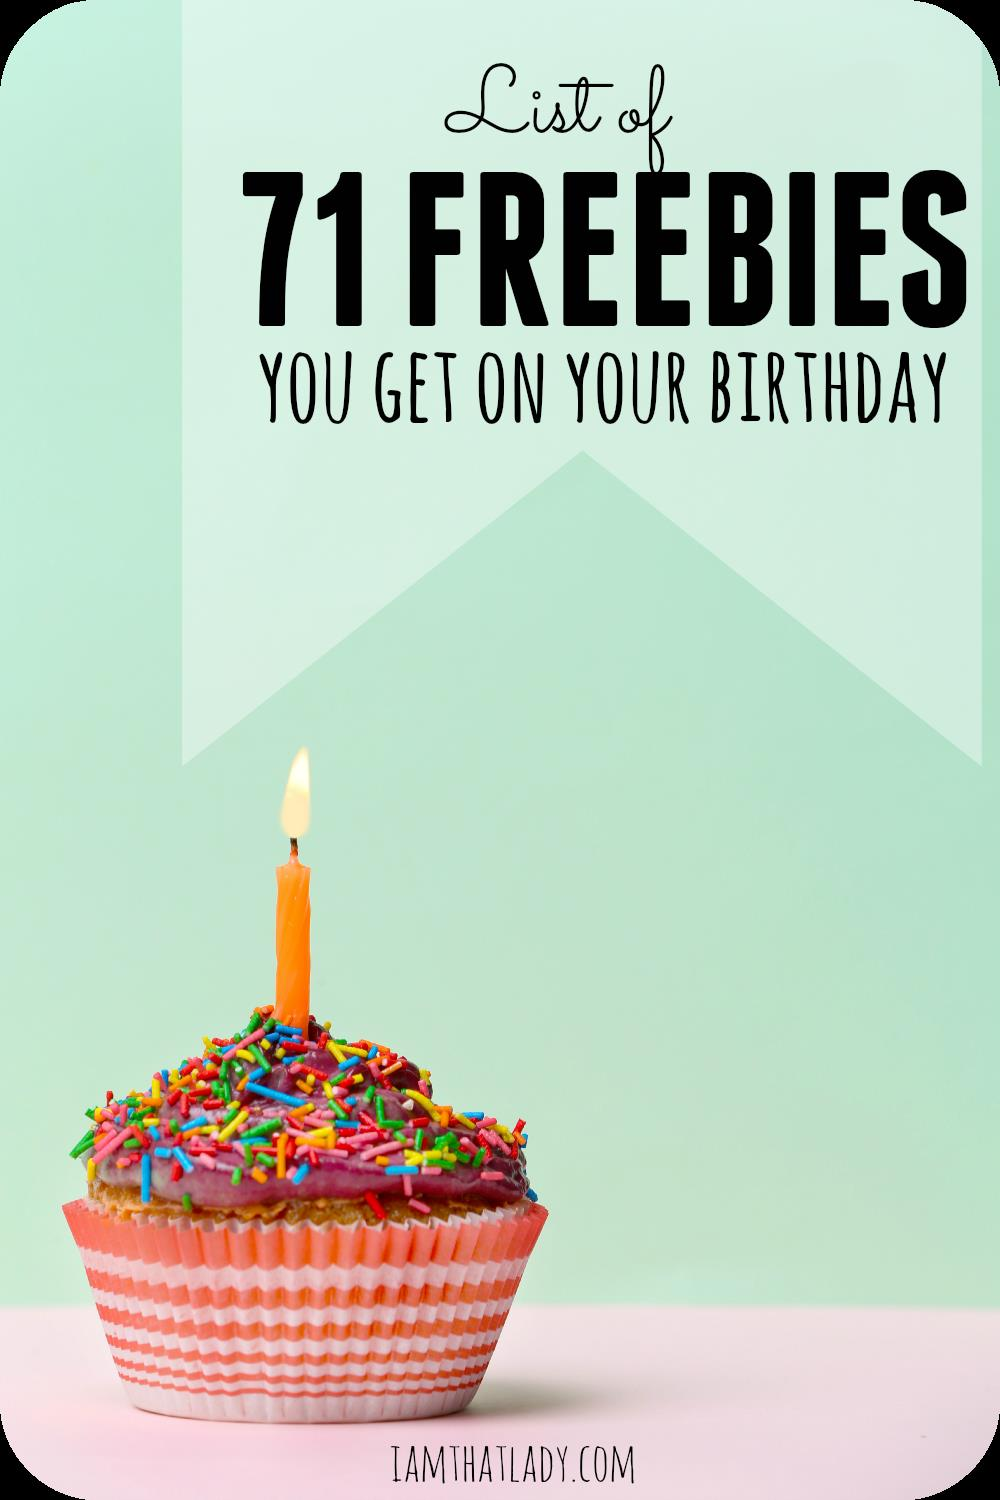 email sign up for free birthday stuff ; 2743d4cb31df251339f027f53c268425